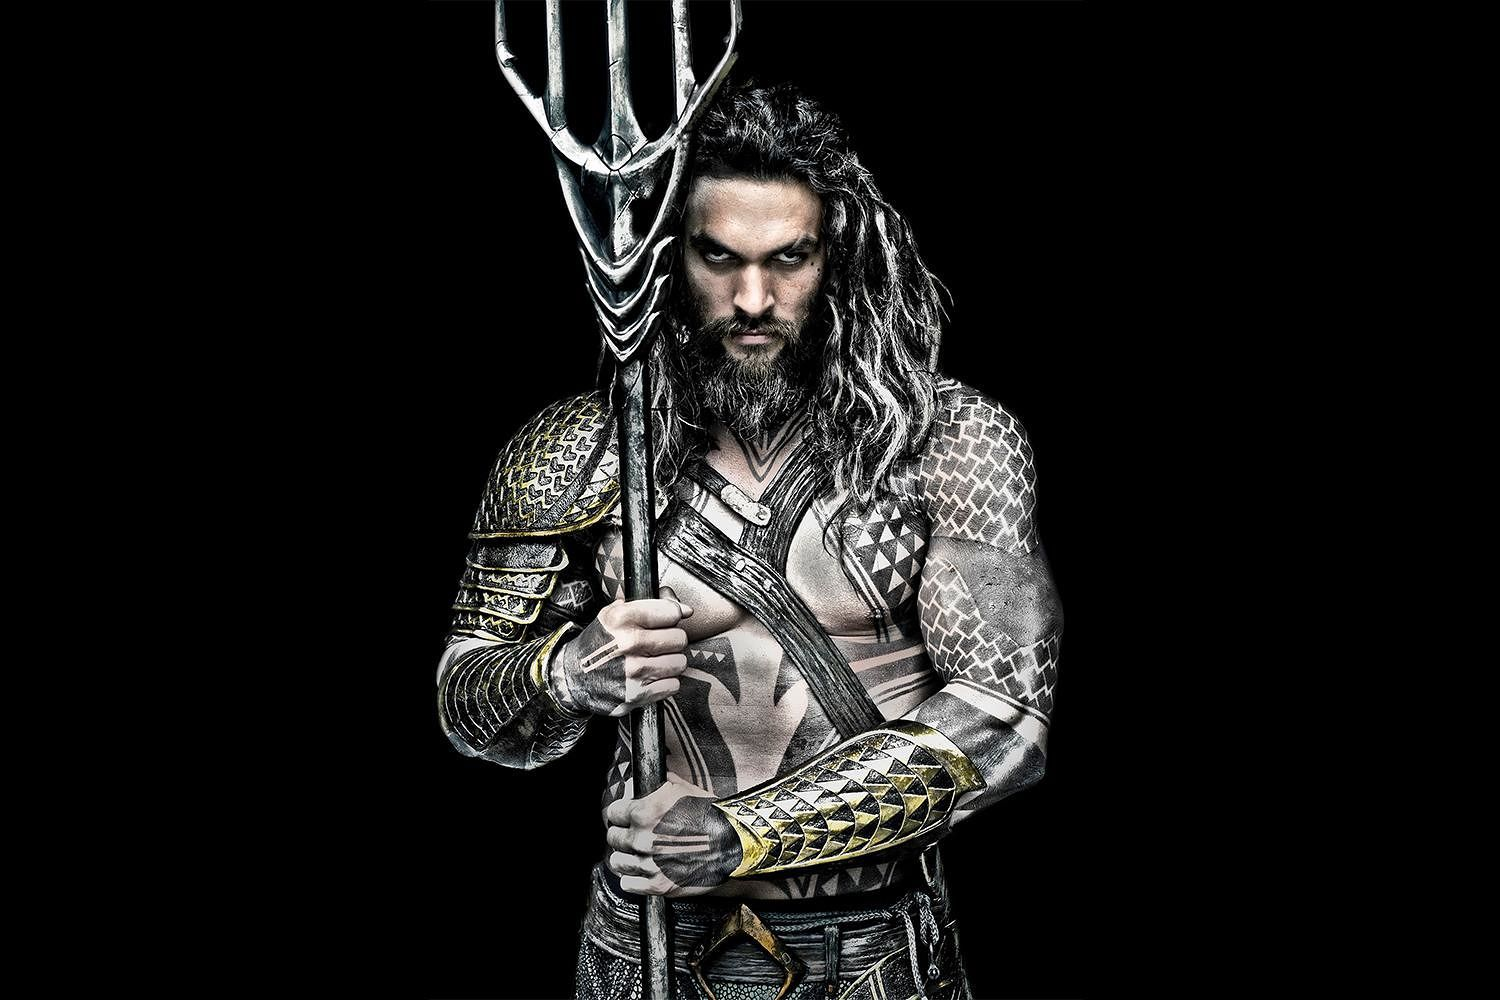 Aquaman's Jason Momoa has seen Zack Snyder's Justice League cut